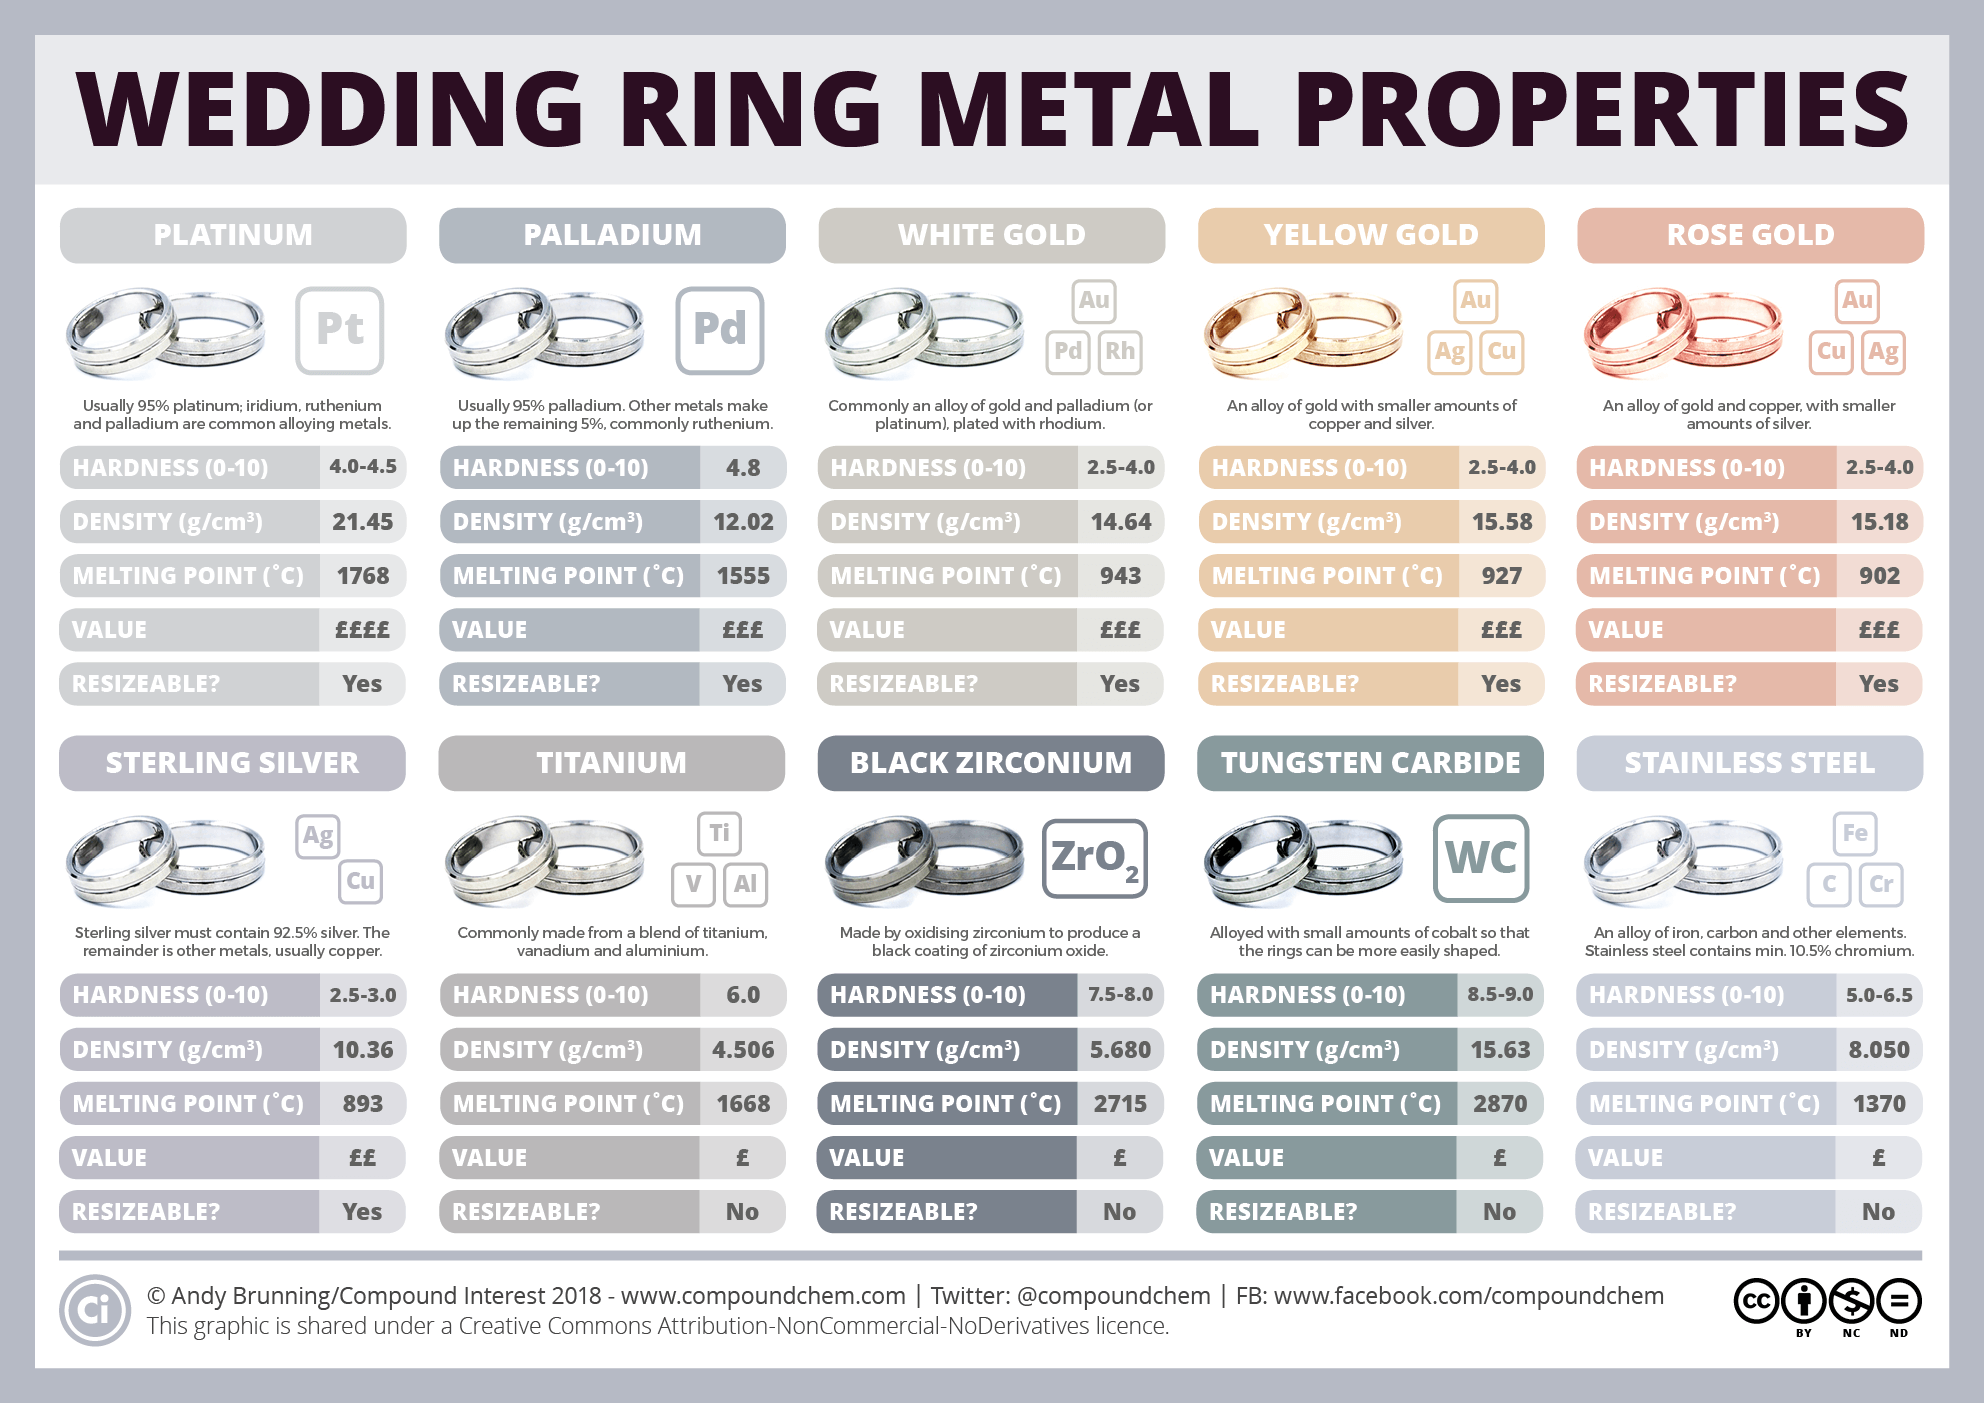 What are wedding rings made of, and how do their properties vary?